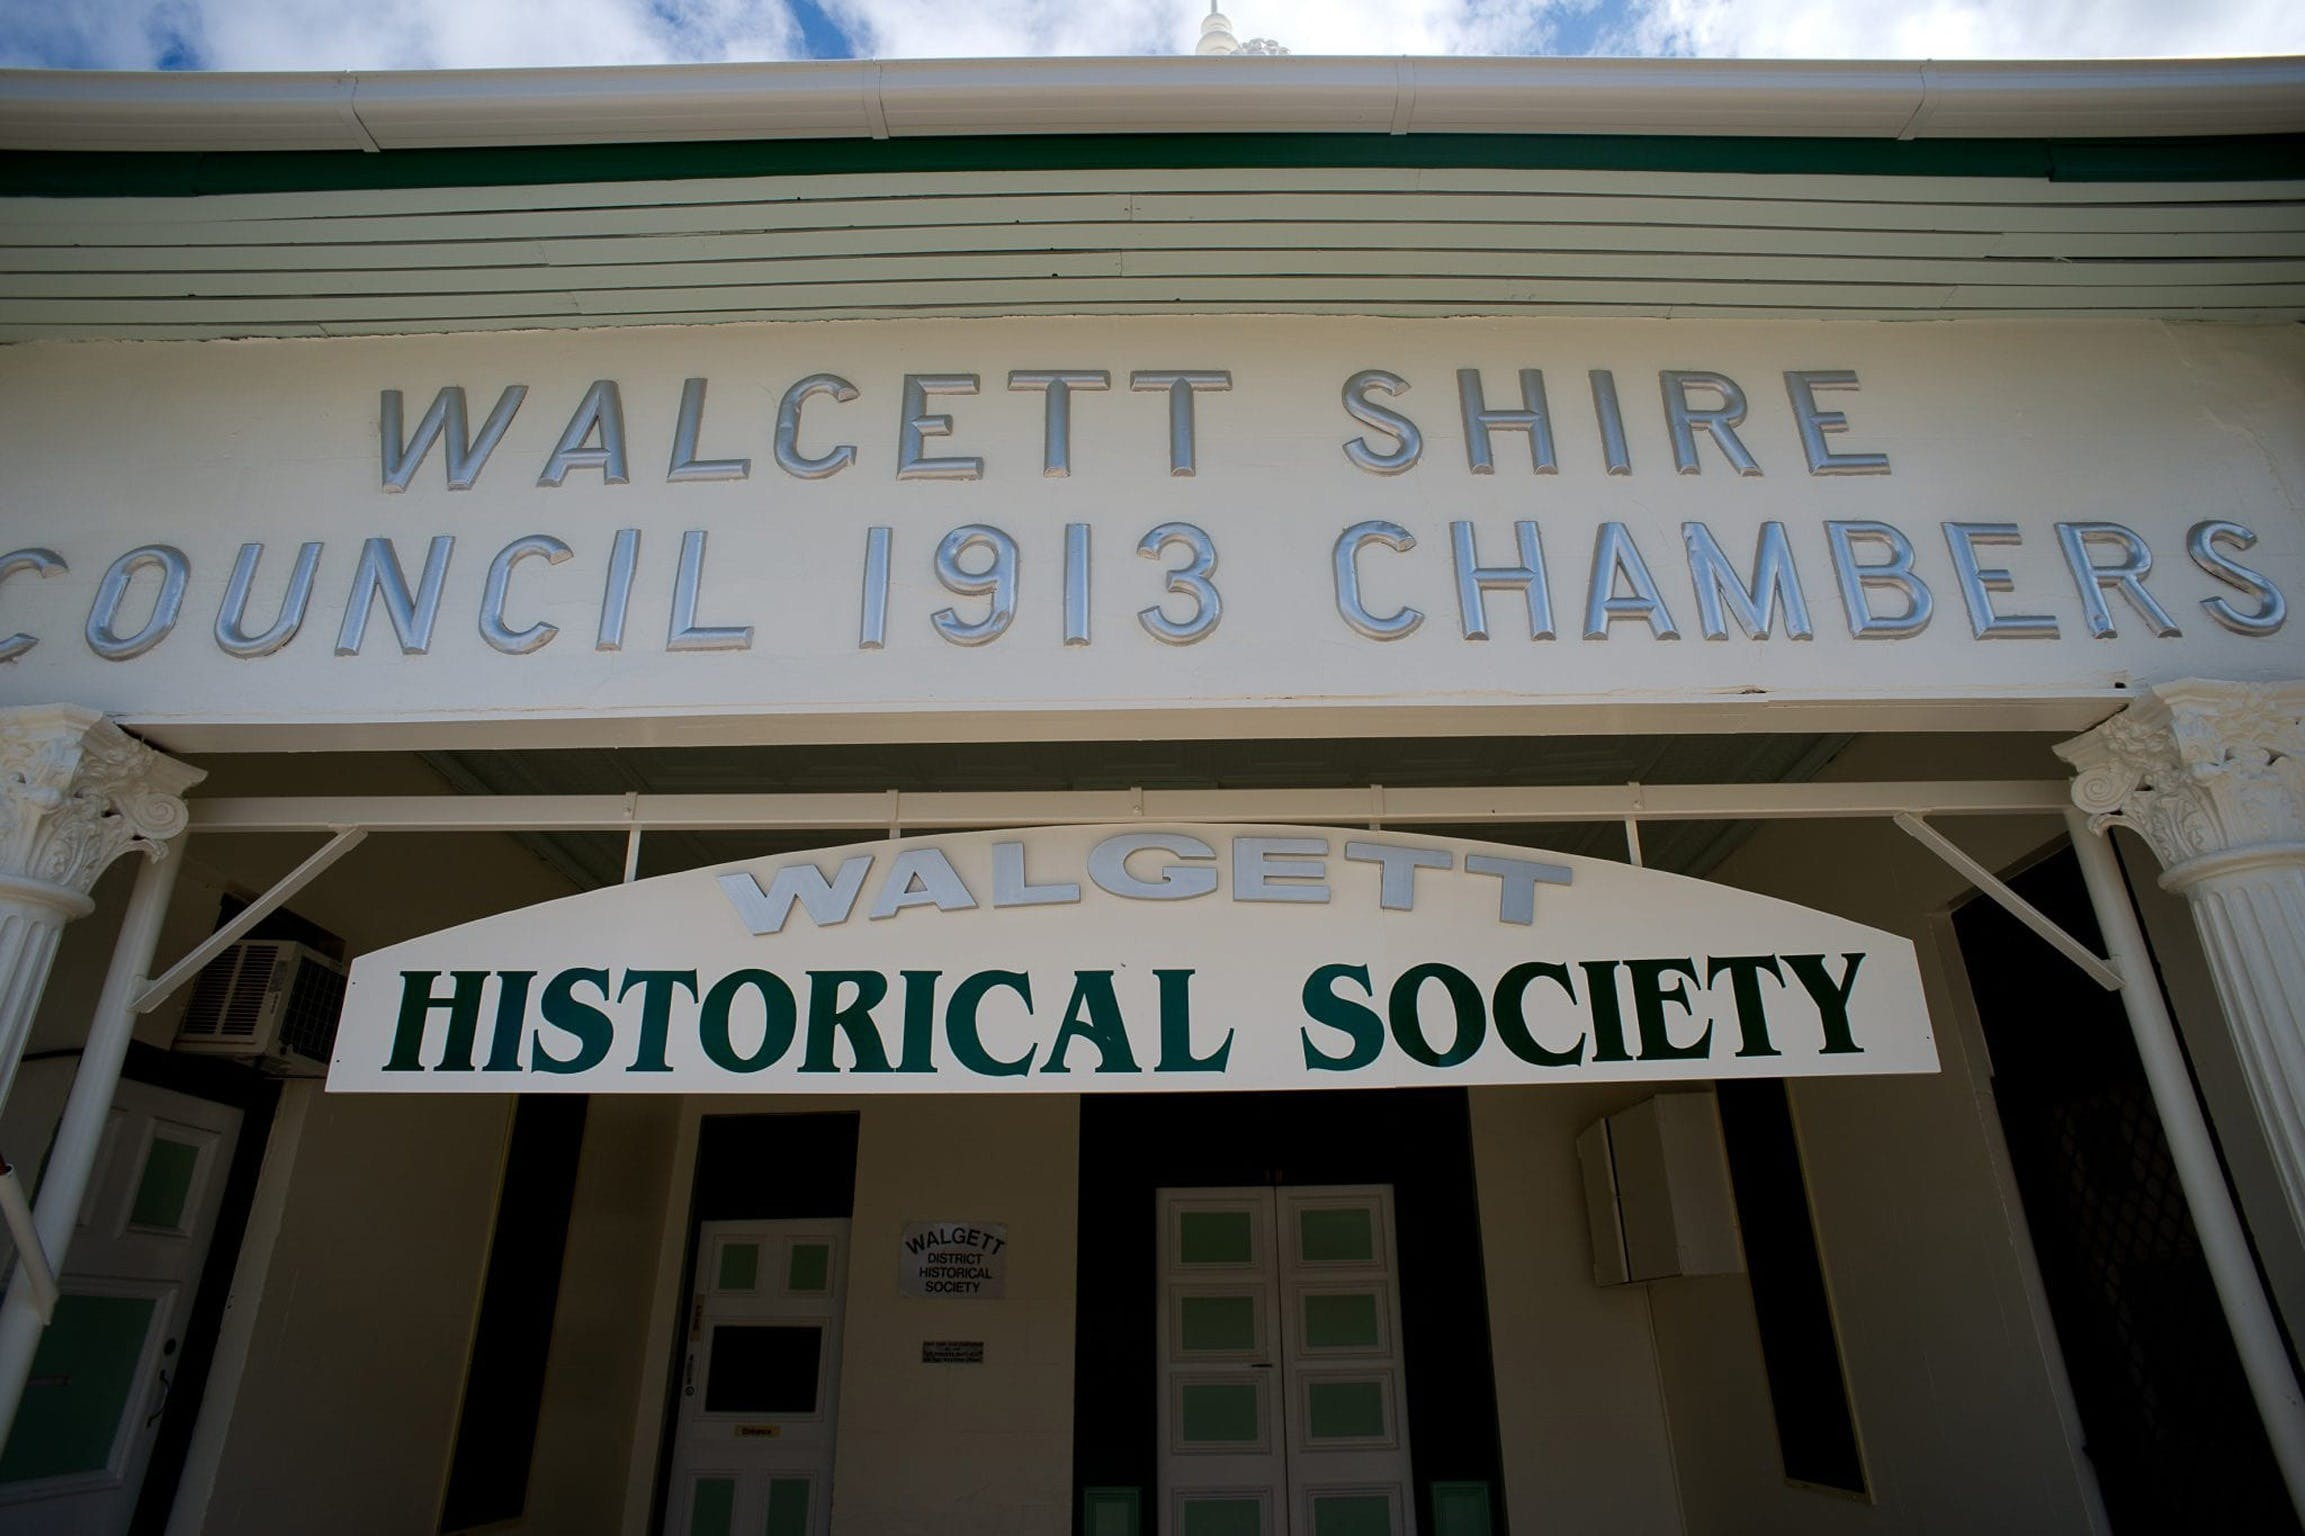 Walgett Historical Society - Find Attractions